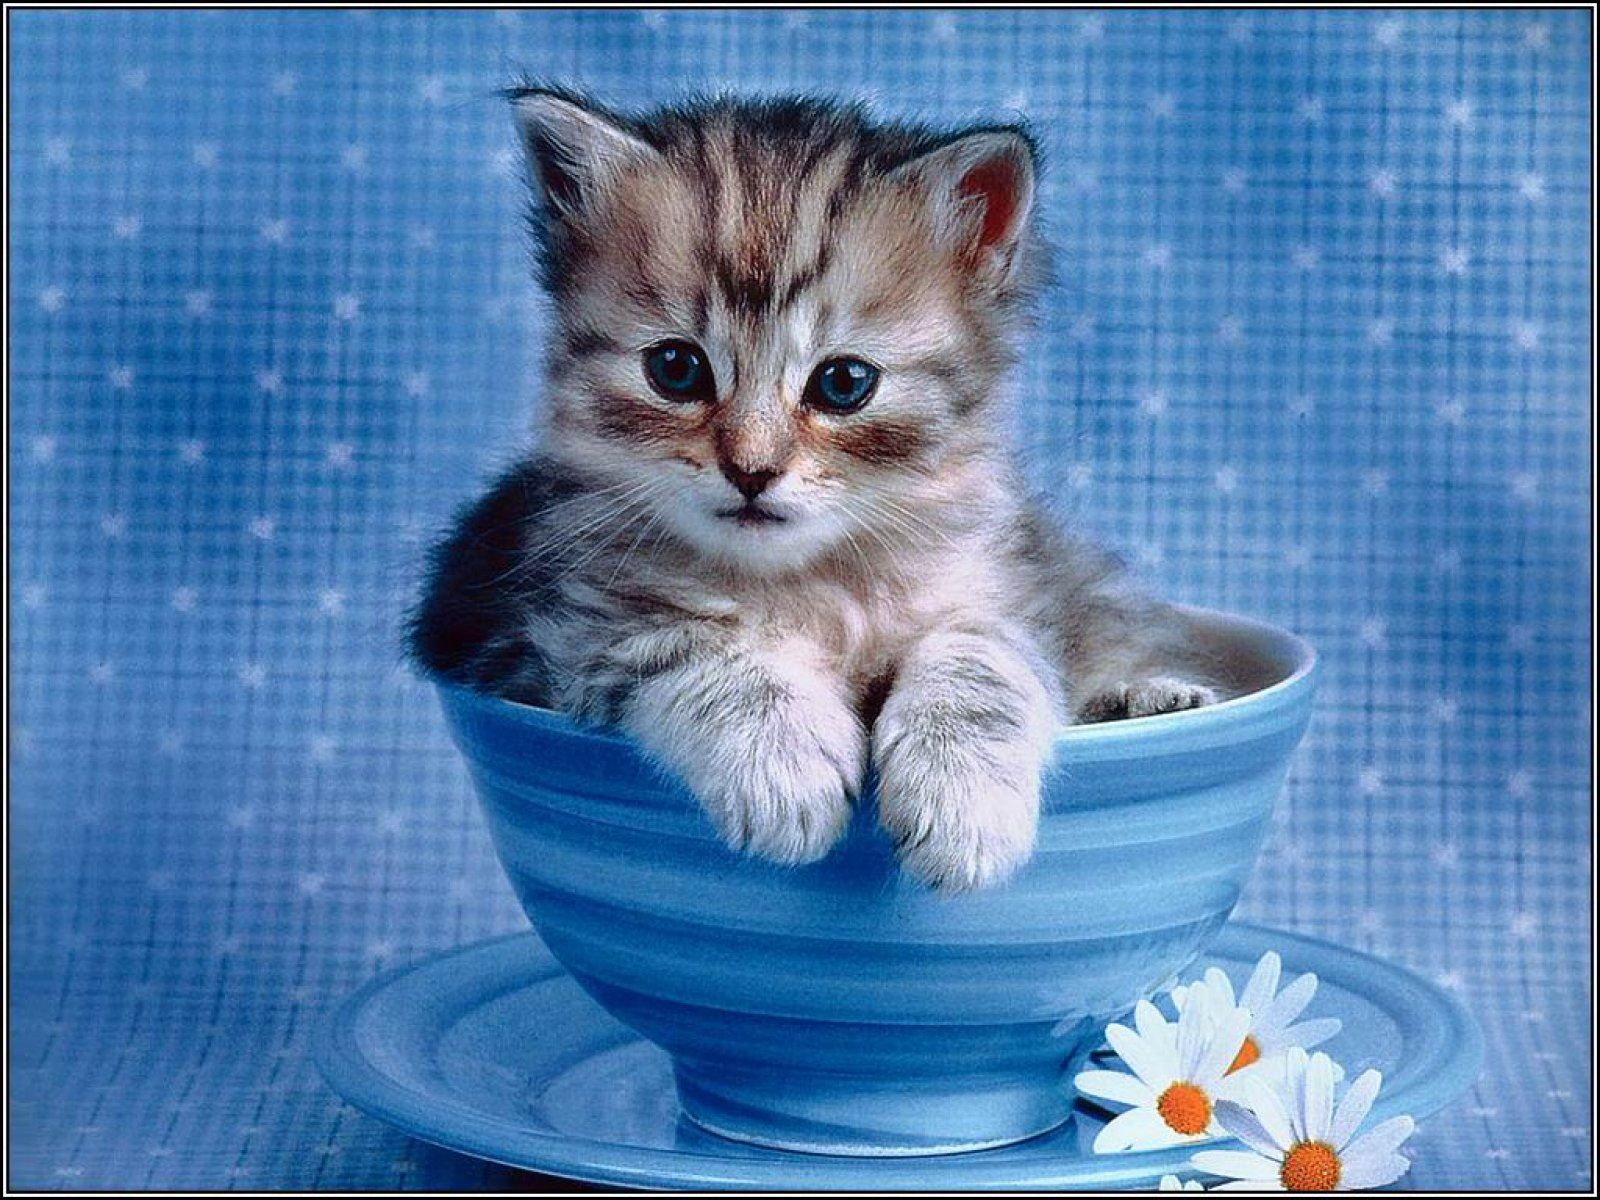 wallpapers cats kittens | cute cats and other pets | pinterest | cat